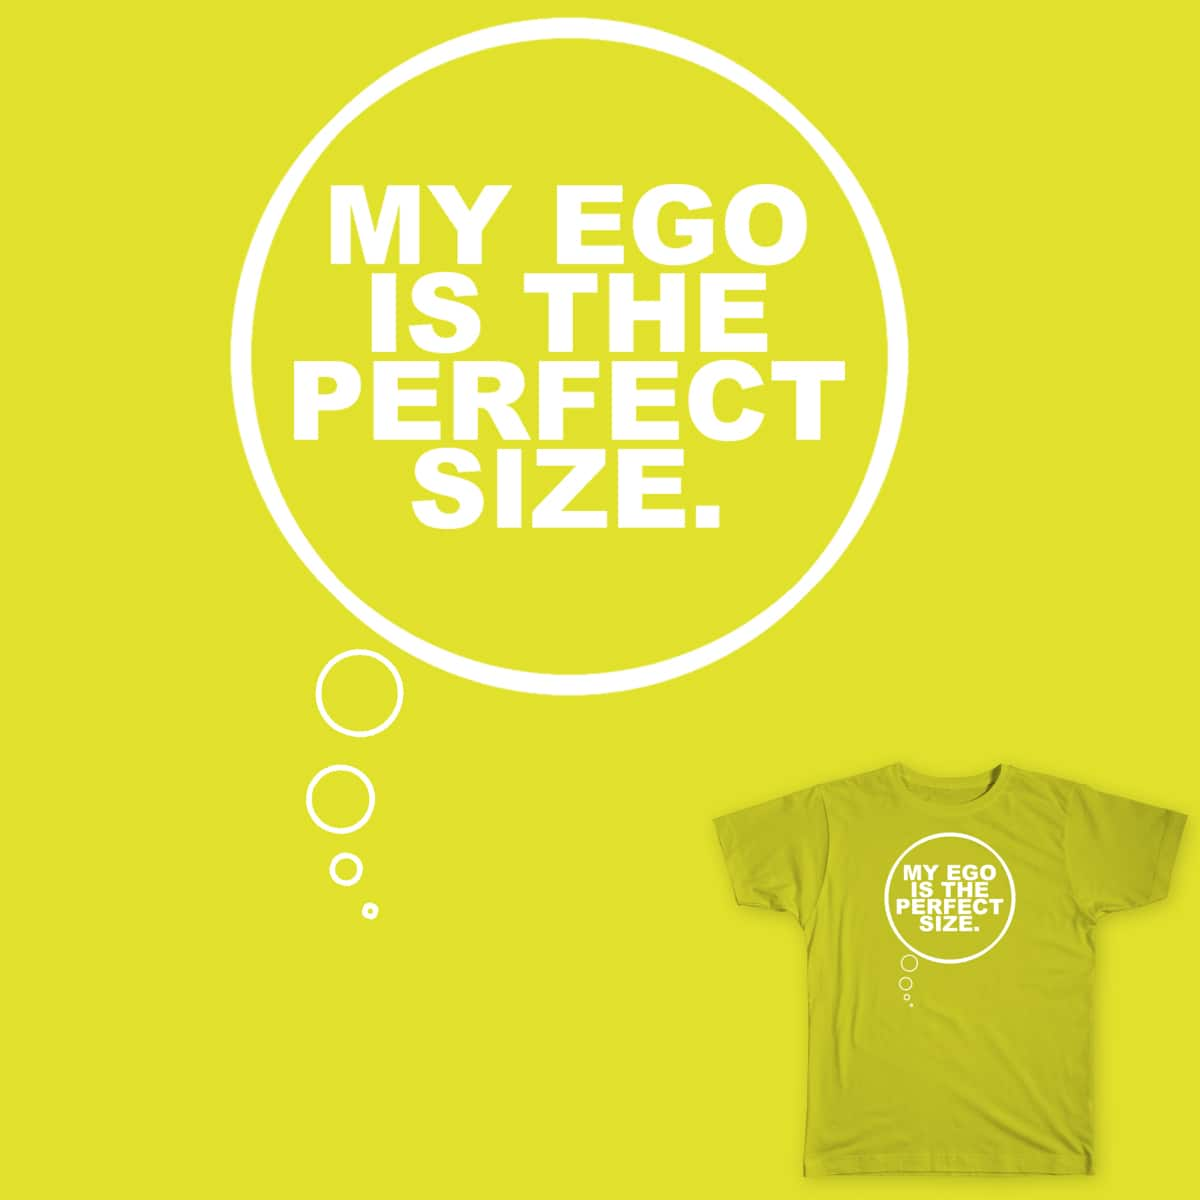 Ego by MaxwellFaust on Threadless